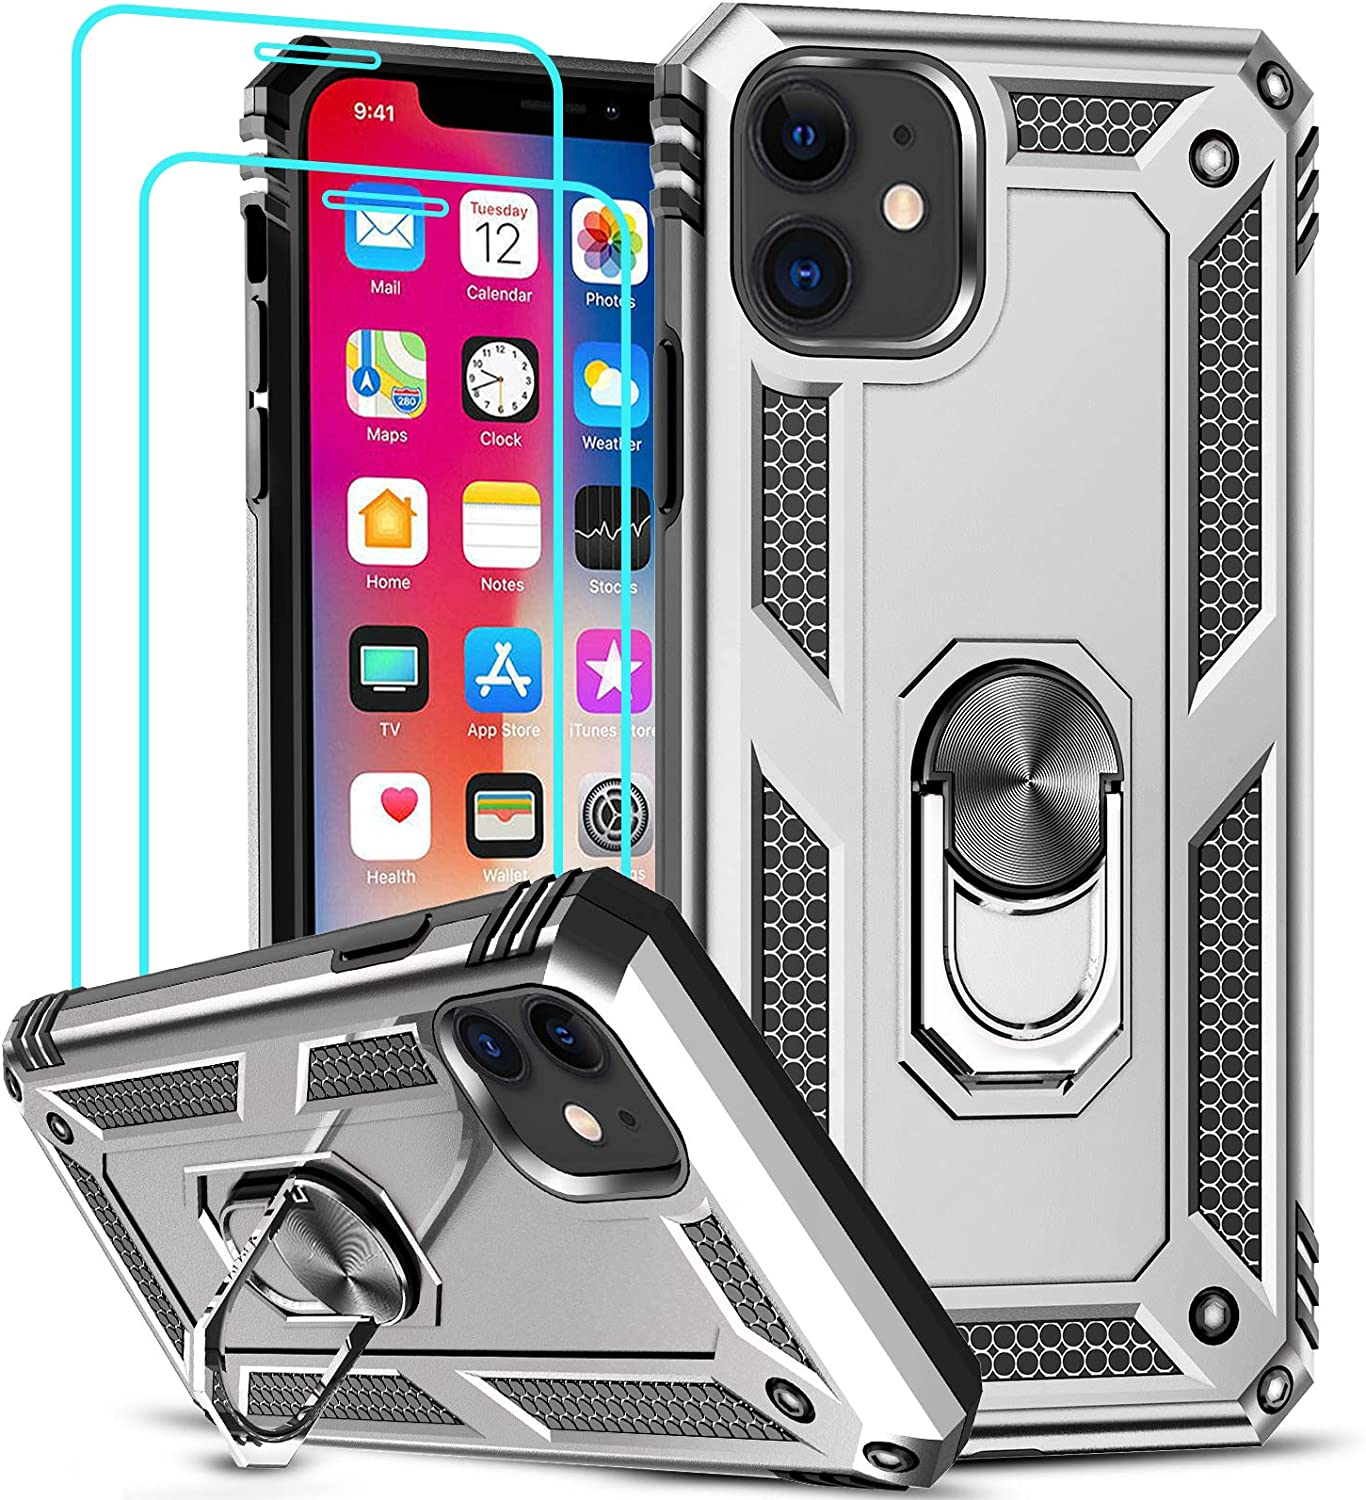 LeYi Compatible for iPhone 11 Case with [2 Pack] Tempered Glass Screen Protector, Military-Grade Armor Phone Cover Case with Ring Magnetic Car Mount Kickstand for iPhone 11 6.1 inch, Silver